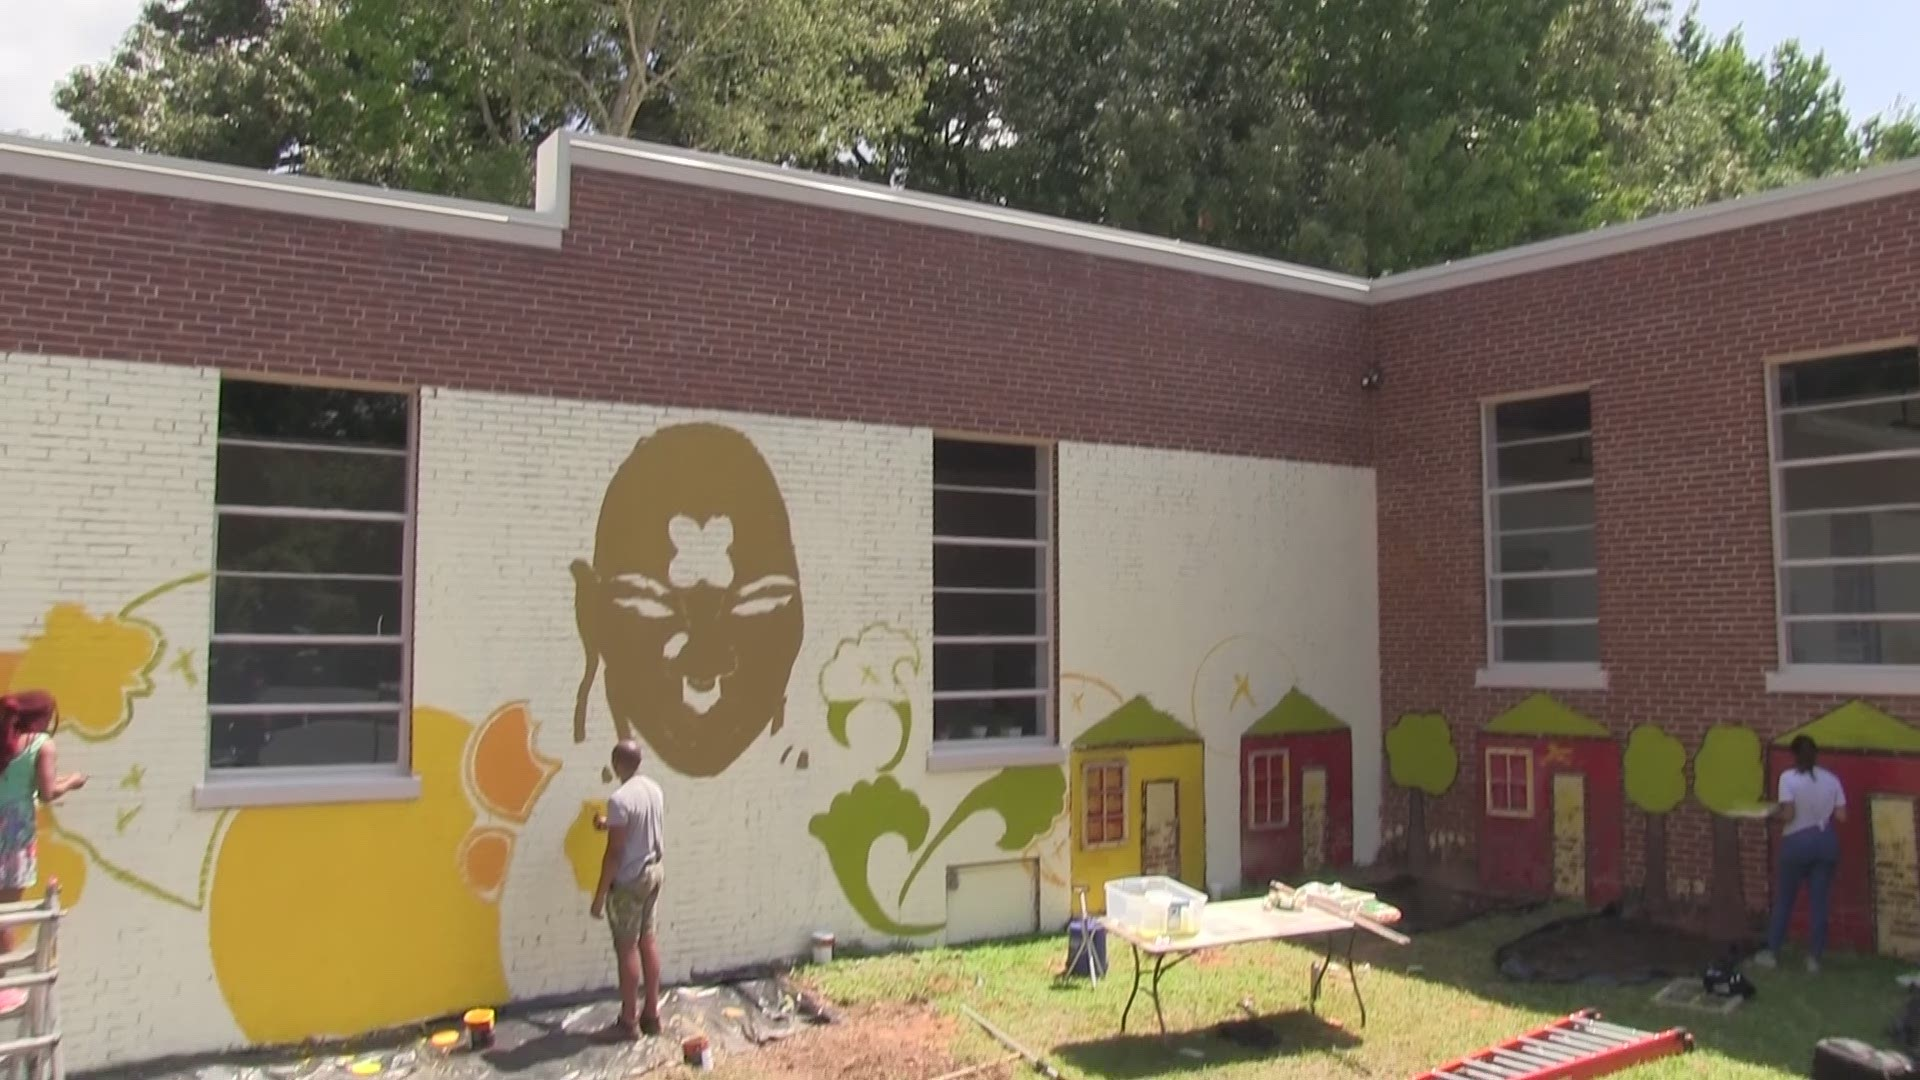 Rising' mural artist gives students an off-the-wall experience | 11alive.com